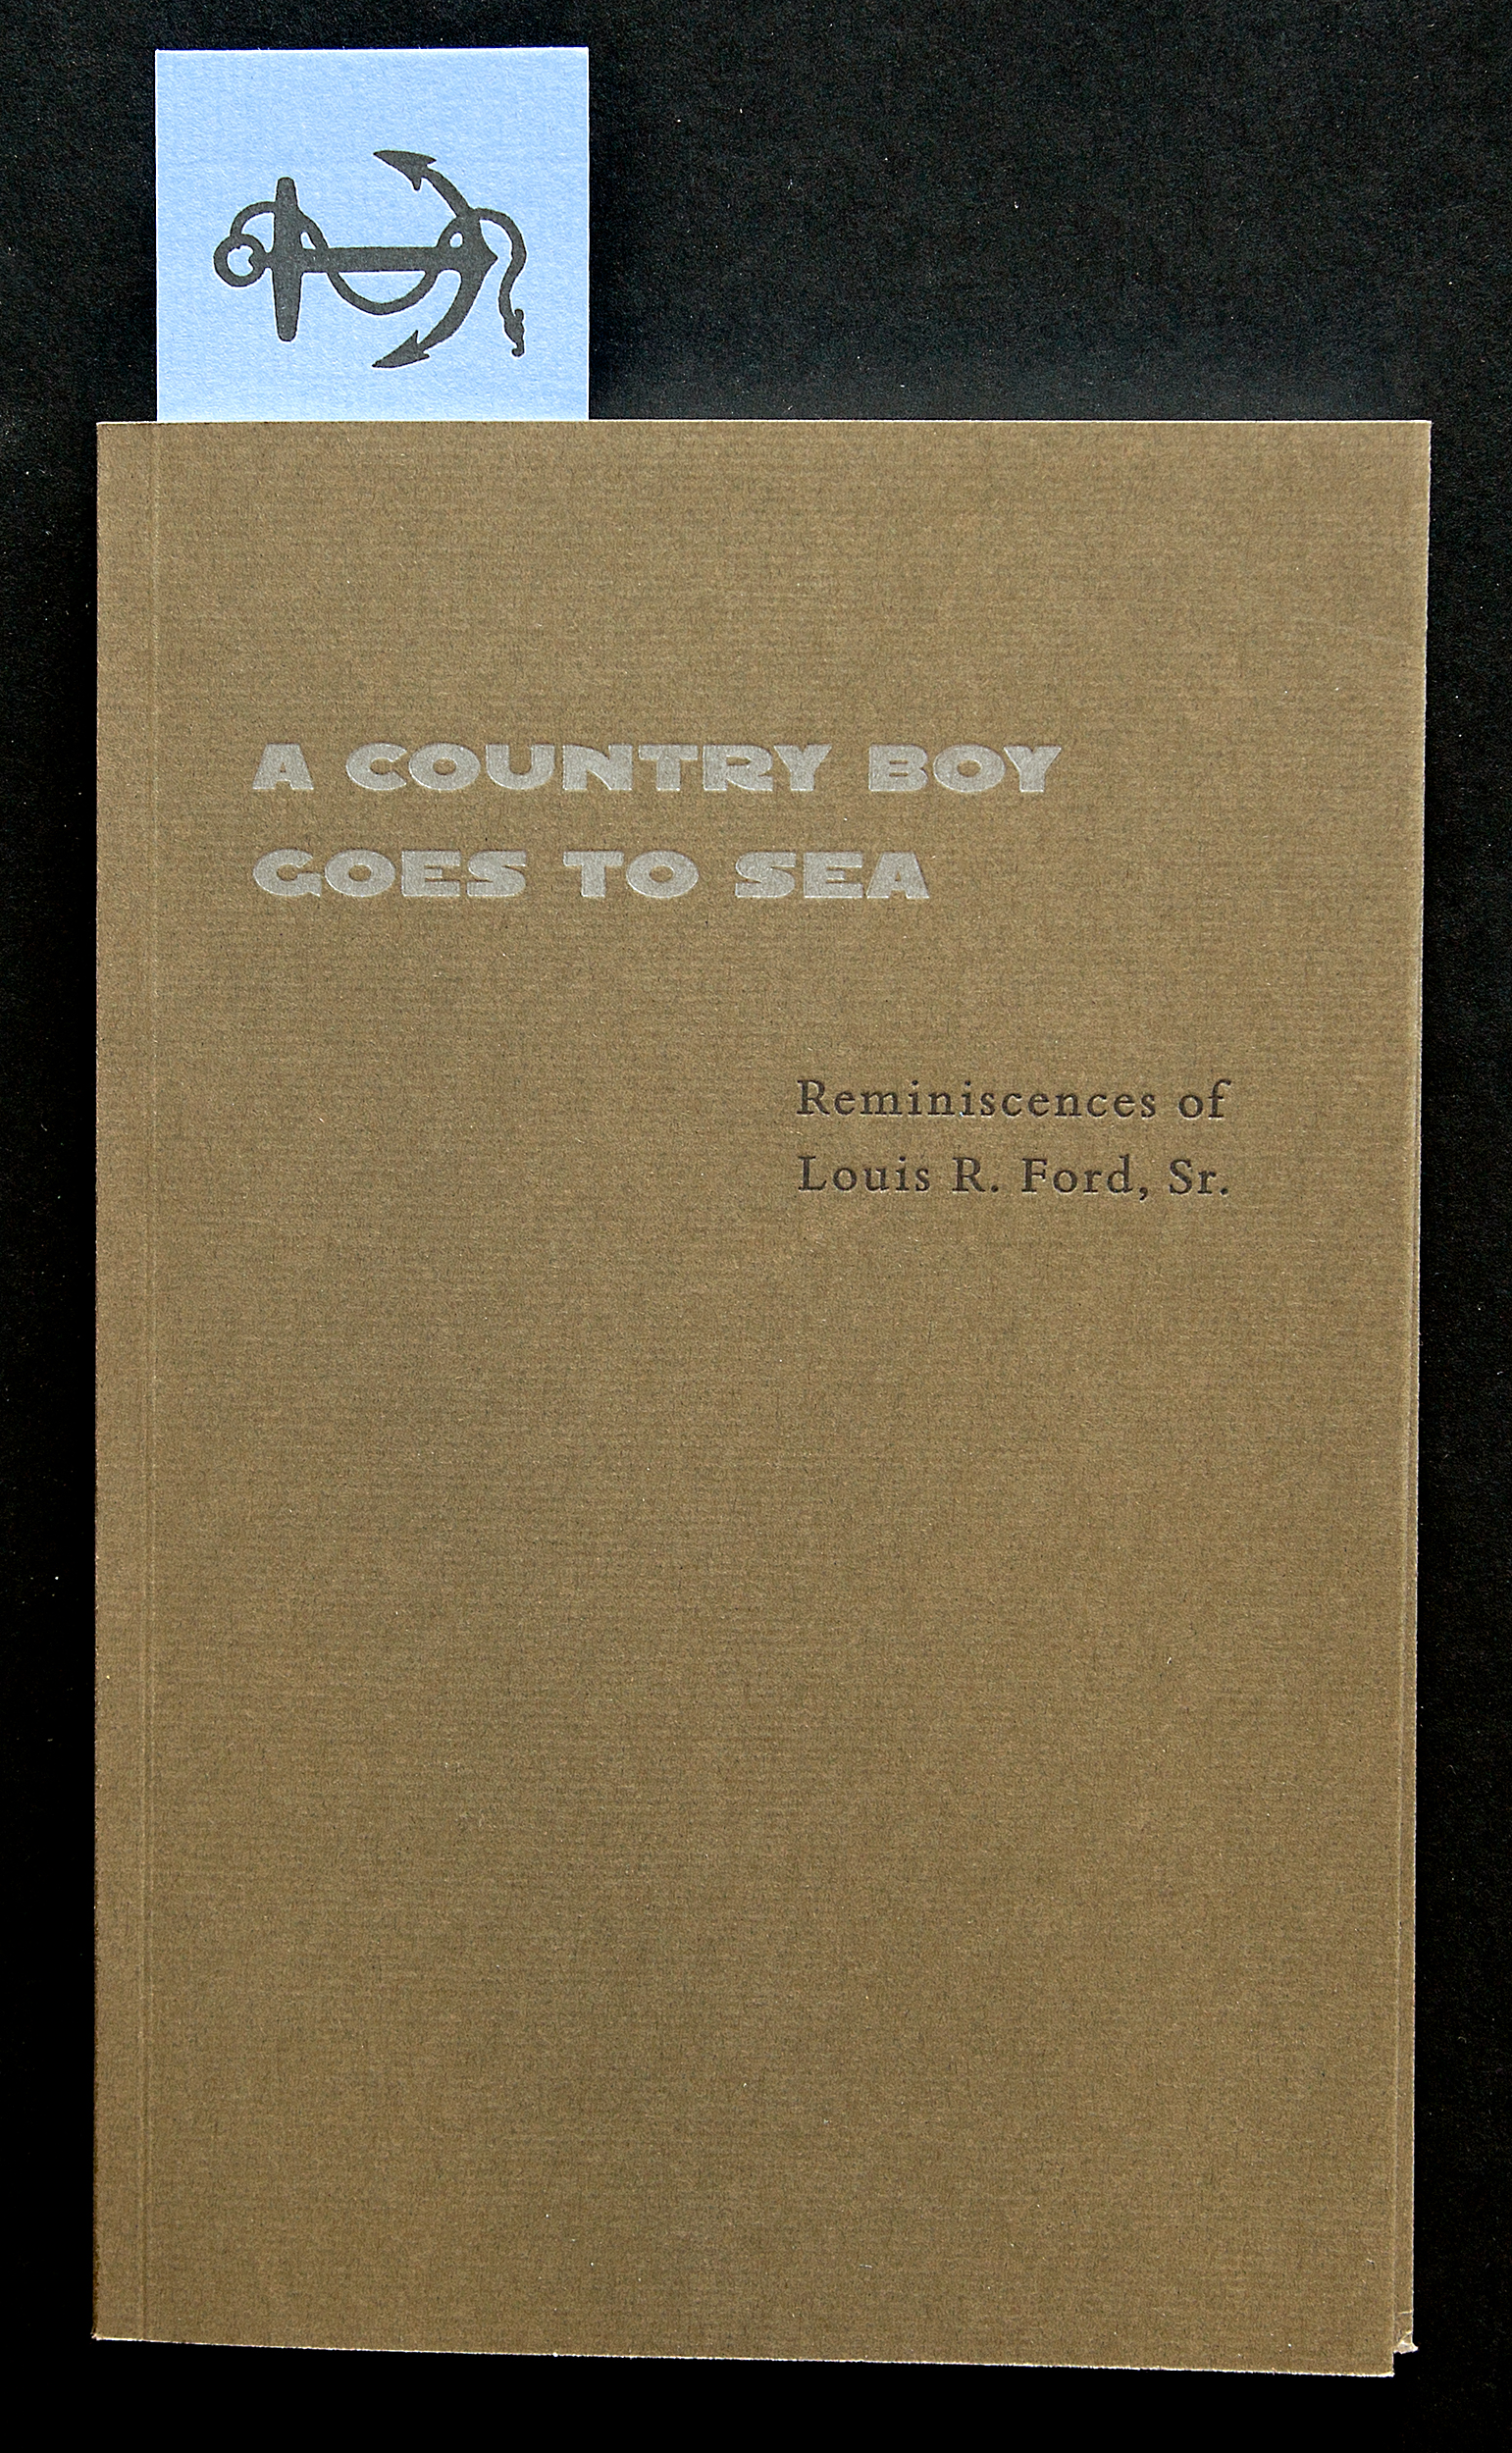 CountryBoy.cover.withbookmark.jpg